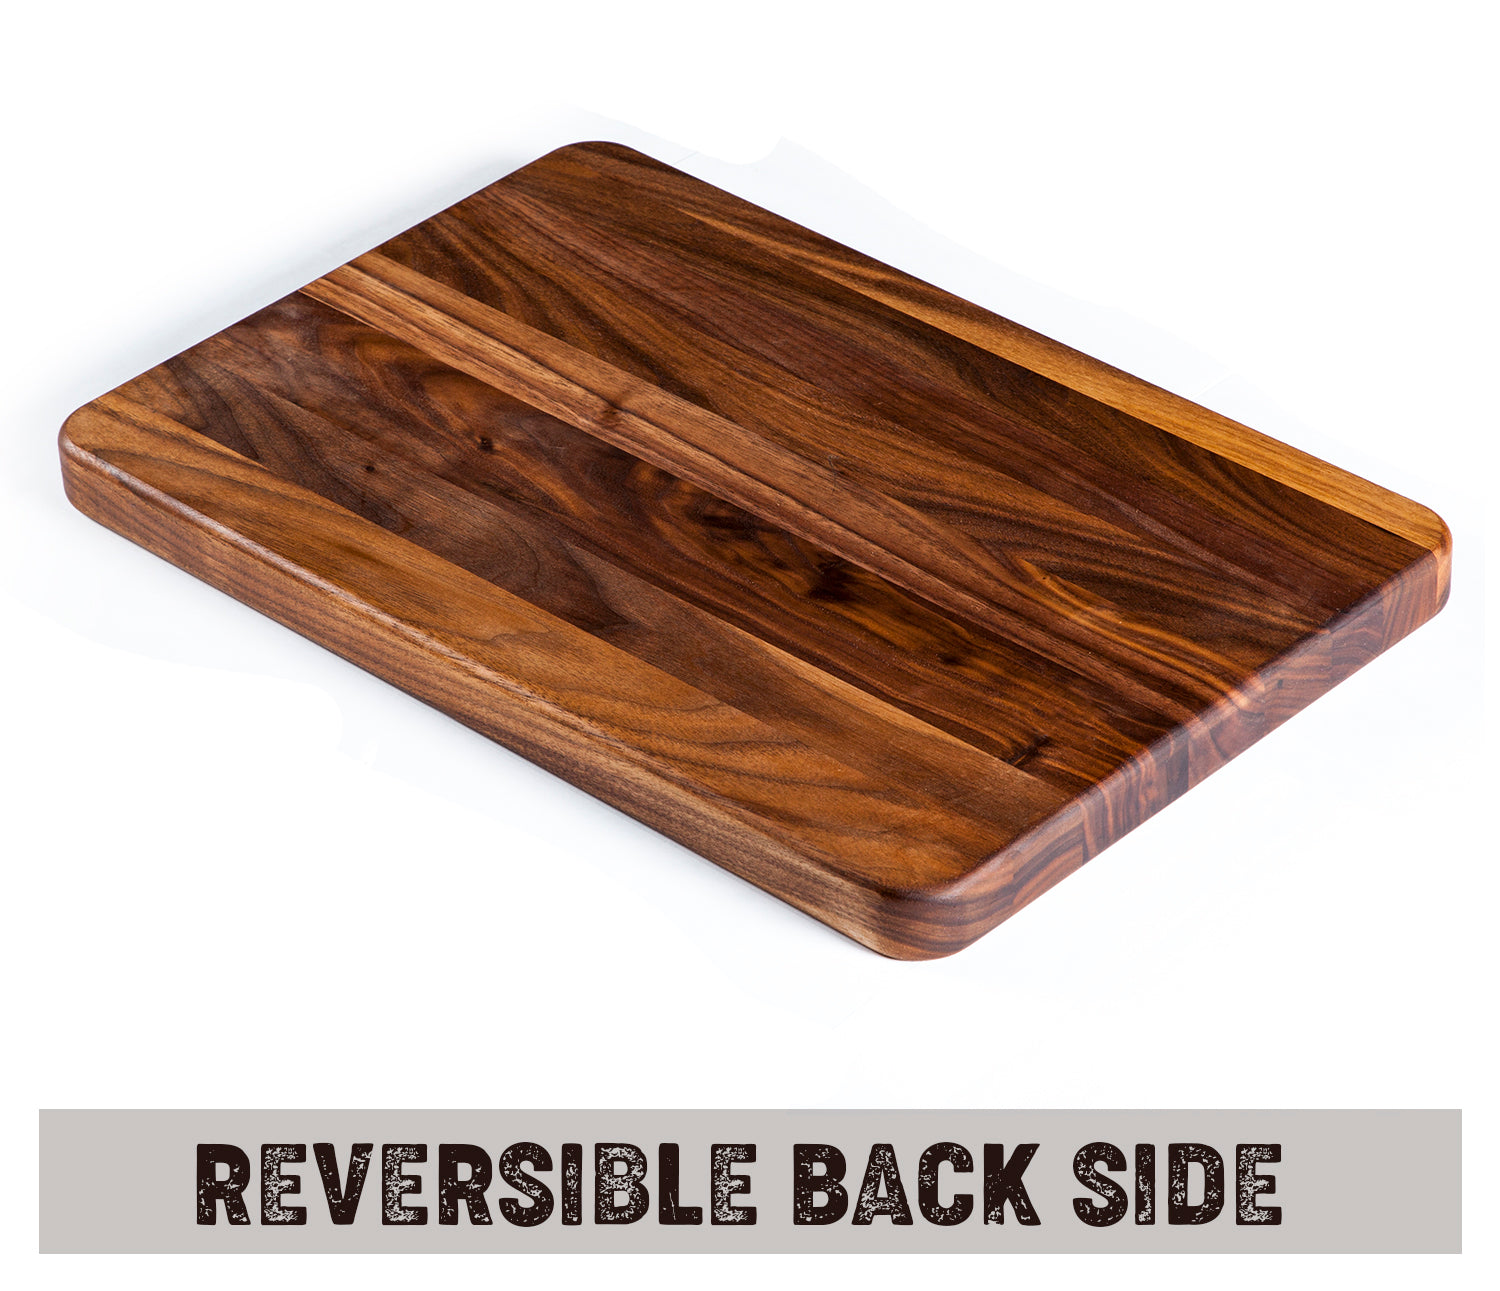 1812 Flat Grain Walnut Cutting Board with Juice Grooves  1 ¼ Thick